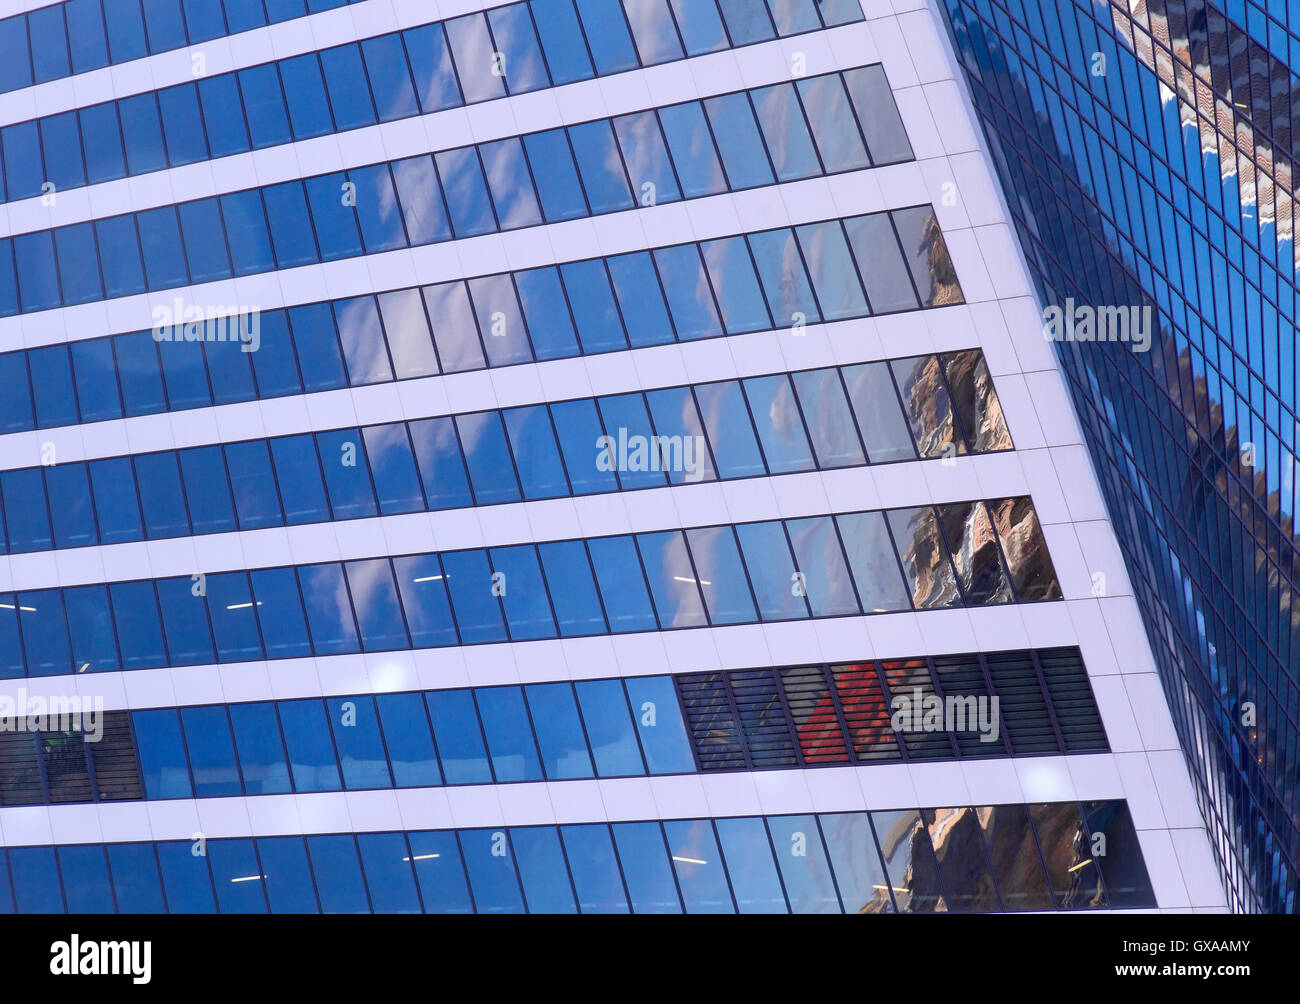 Abstract Architecture Contemporary Building Reflections Stockfotos ...